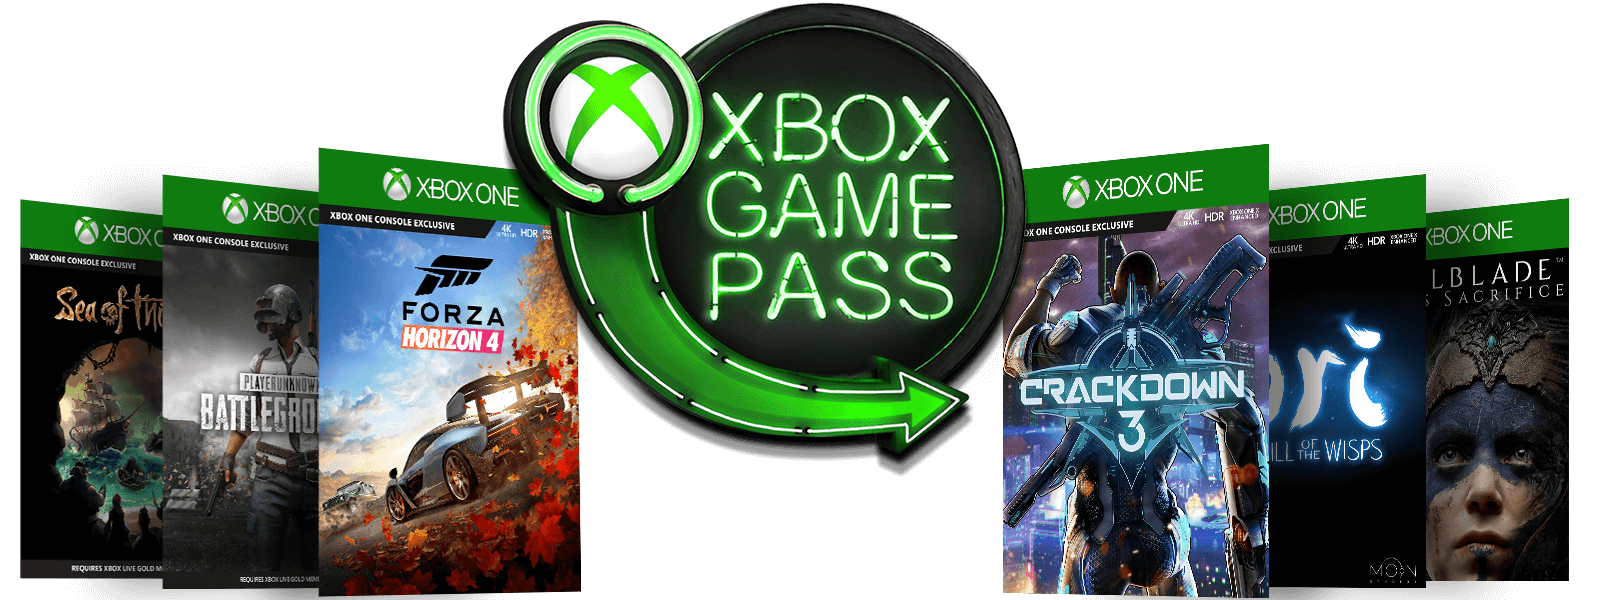 Xbox Game Pass neon sign with Xbox sphere logo and green arrow surrounded by six games: Sea of Thieves, PLAYERUNKNOWN'S BATTLEGROUND, Forza Horizon 4, Crackdown 3, Ori and the Will of the Wisps and Hellblade: Senua's Sacrifice